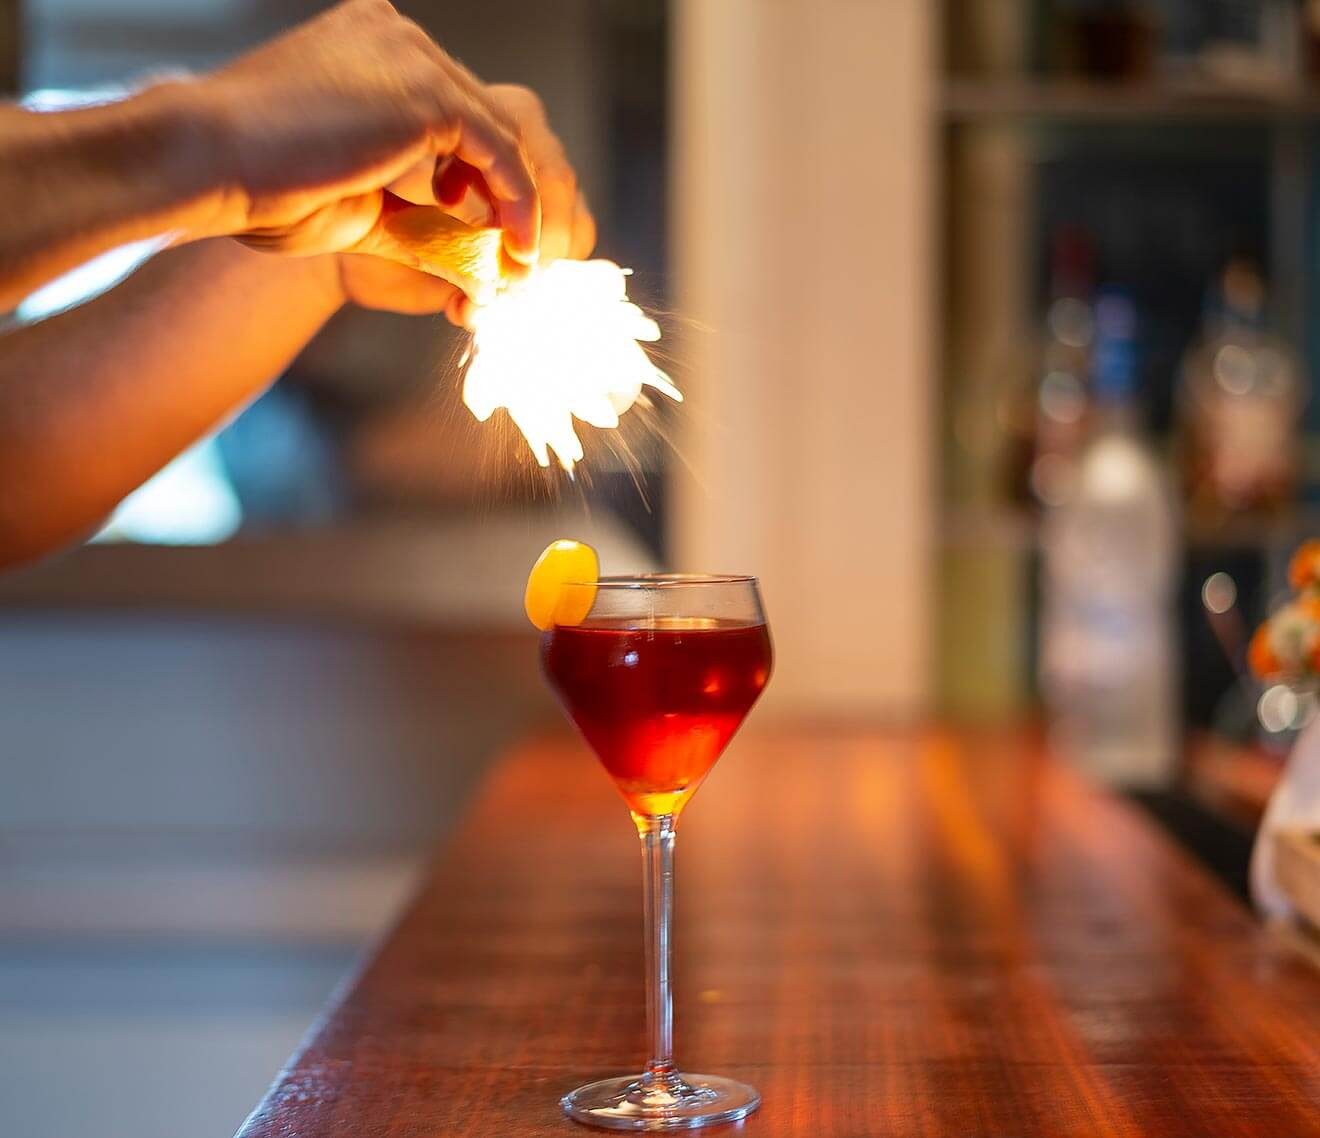 Eau de Vie cocktail with bartender adding garnish with flare